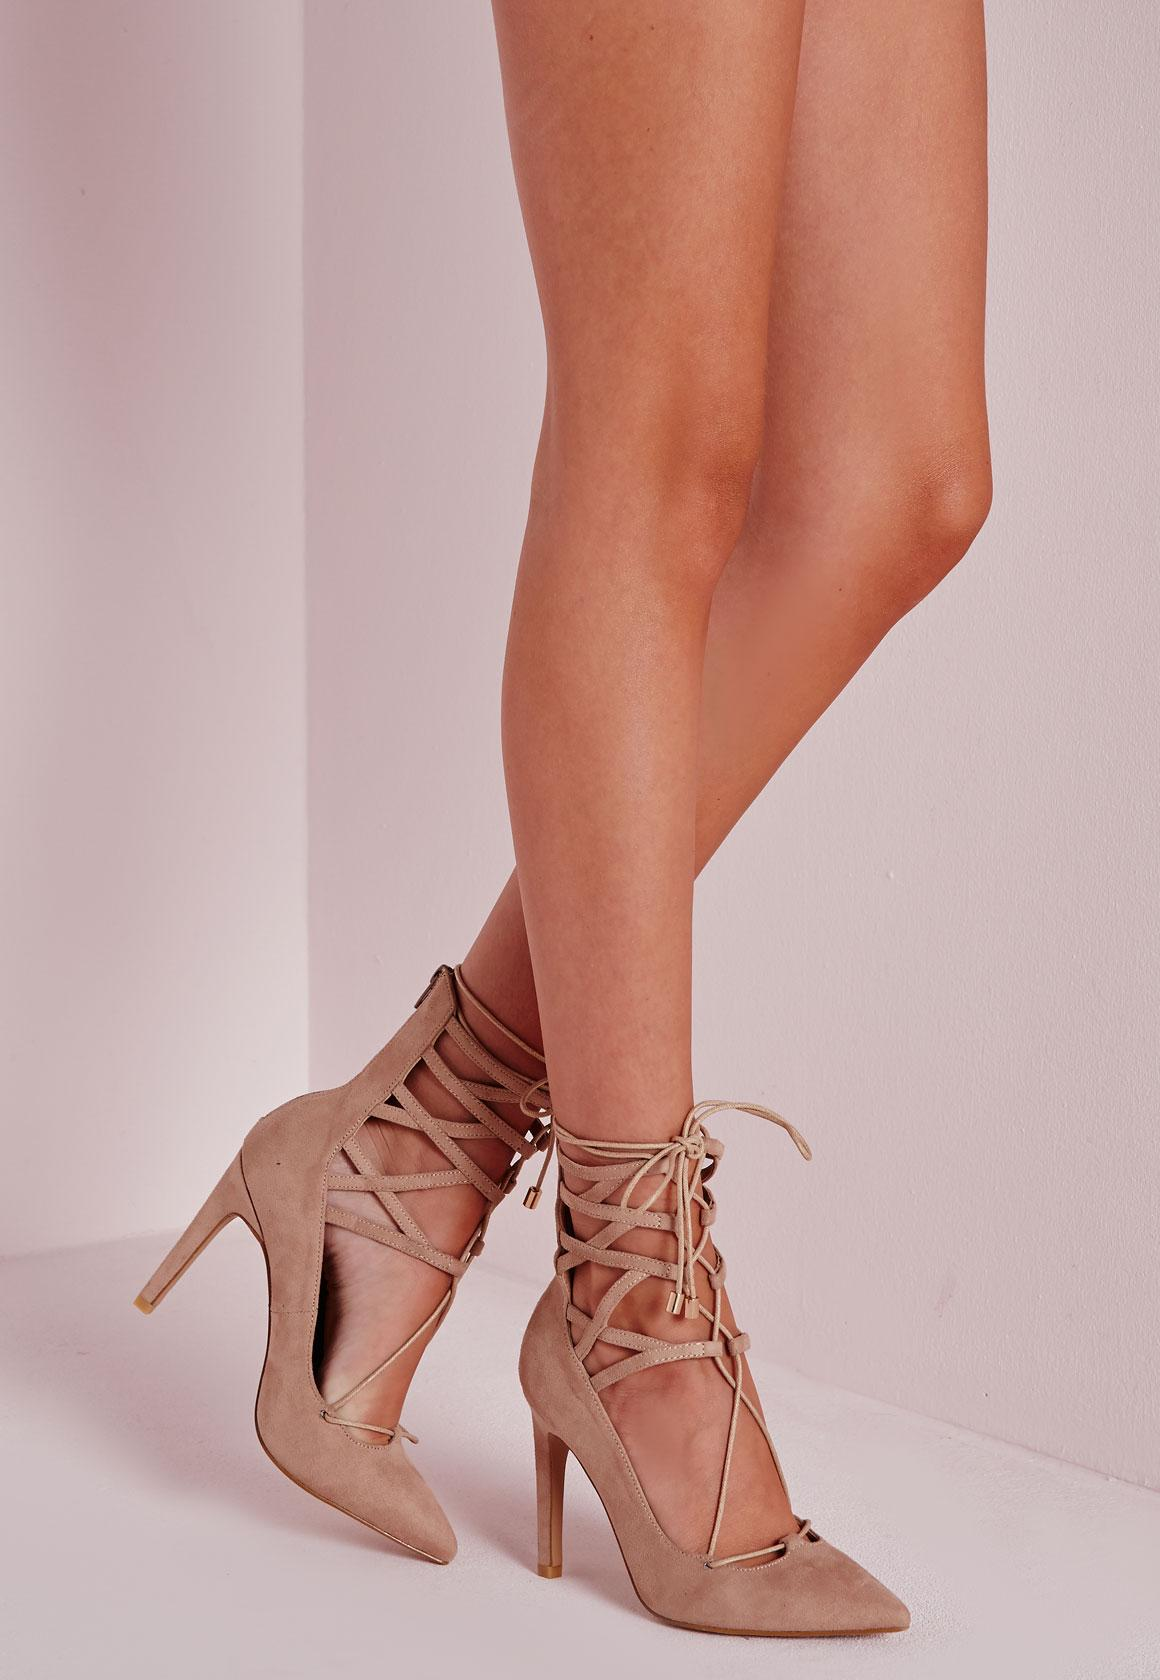 Lace Up Stiletto Heeled Shoes Nude Lace Up Stiletto Heeled Shoes Nude